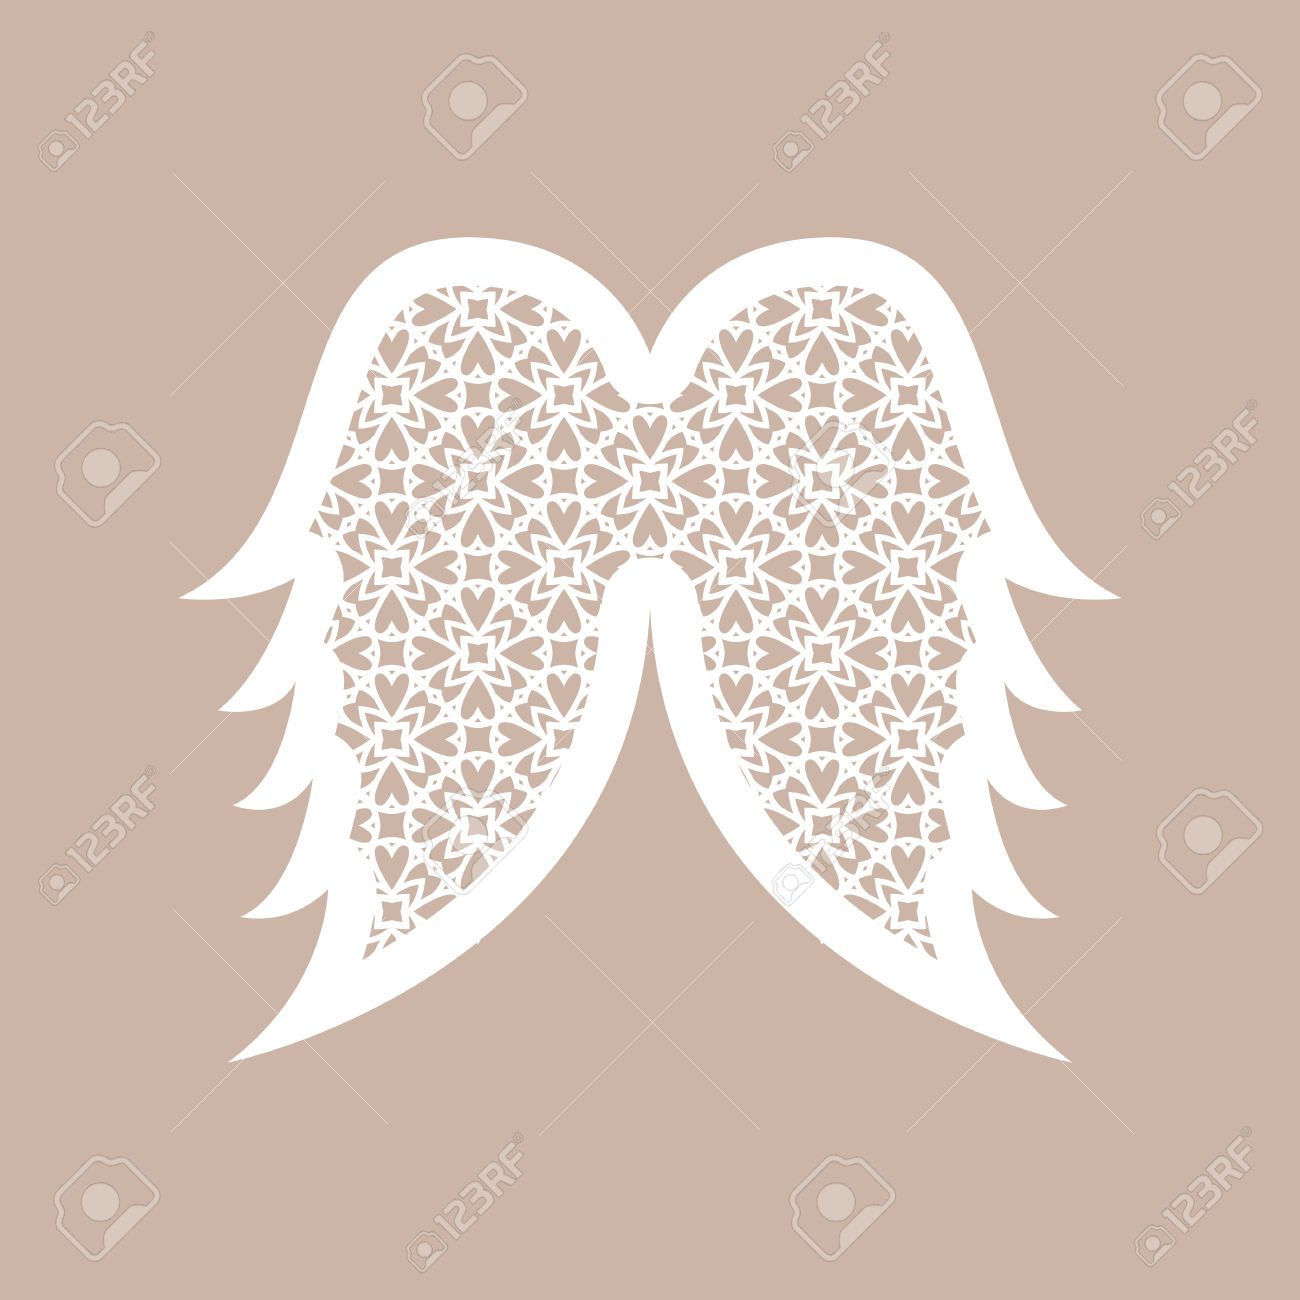 christmas angel wings geometric pattern laser cutting christmas angel wings geometric pattern laser cutting template for greeting cards envelopes